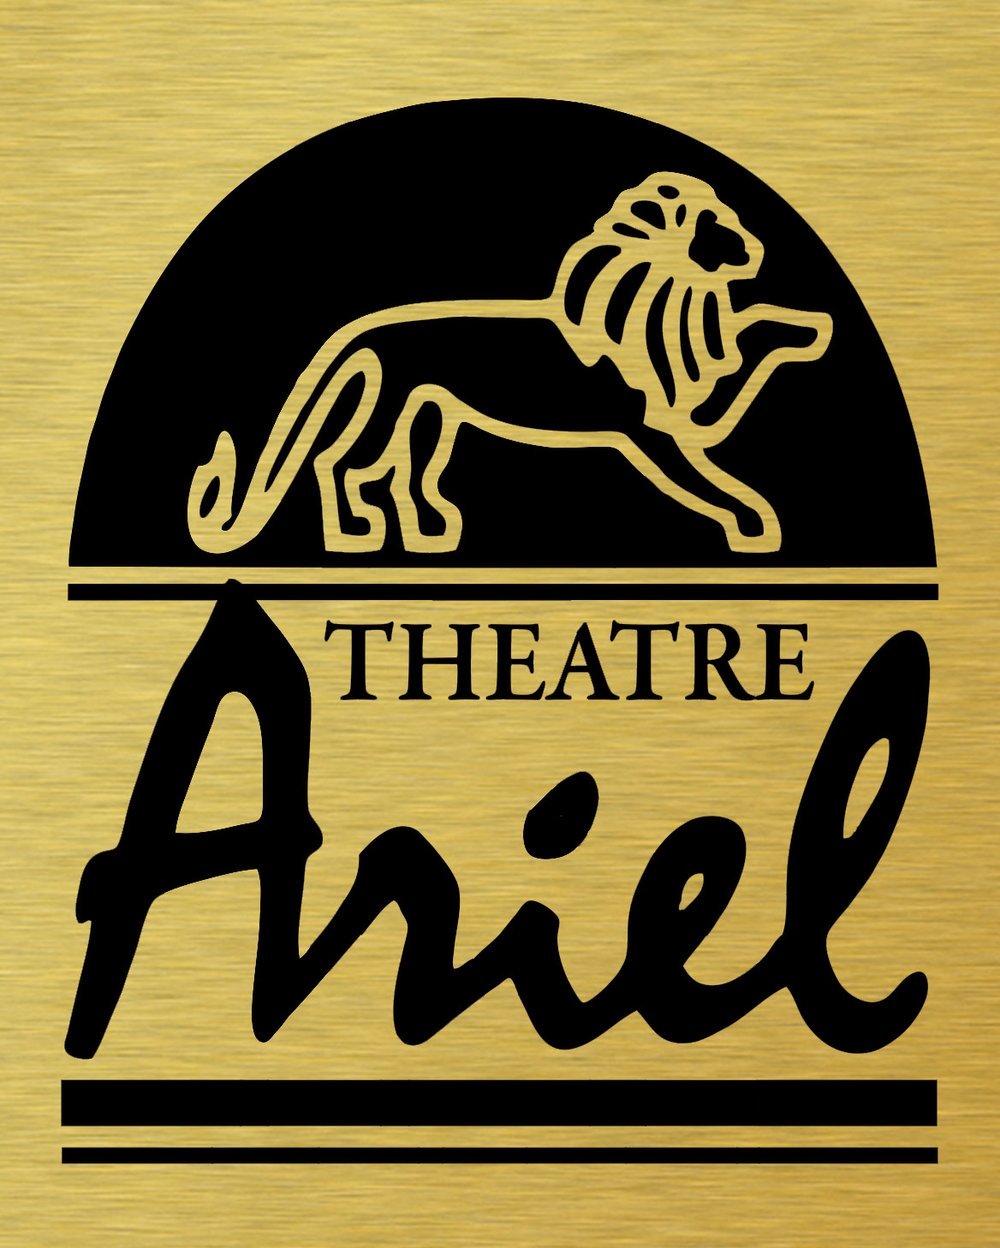 Theater Ariel.jpeg